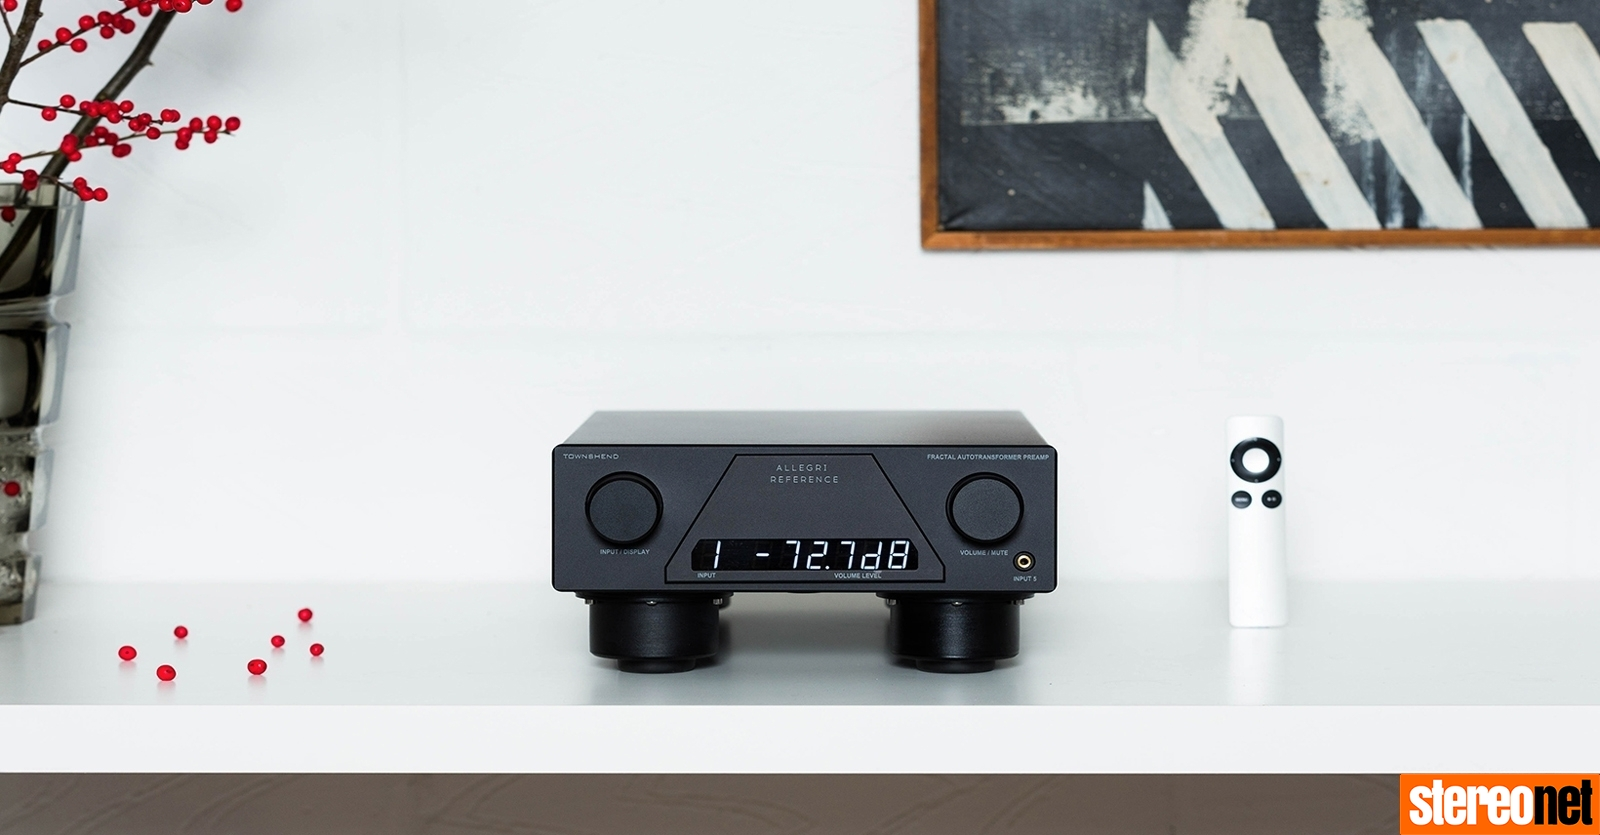 Townshend Allegri Reference Preamplifier Review